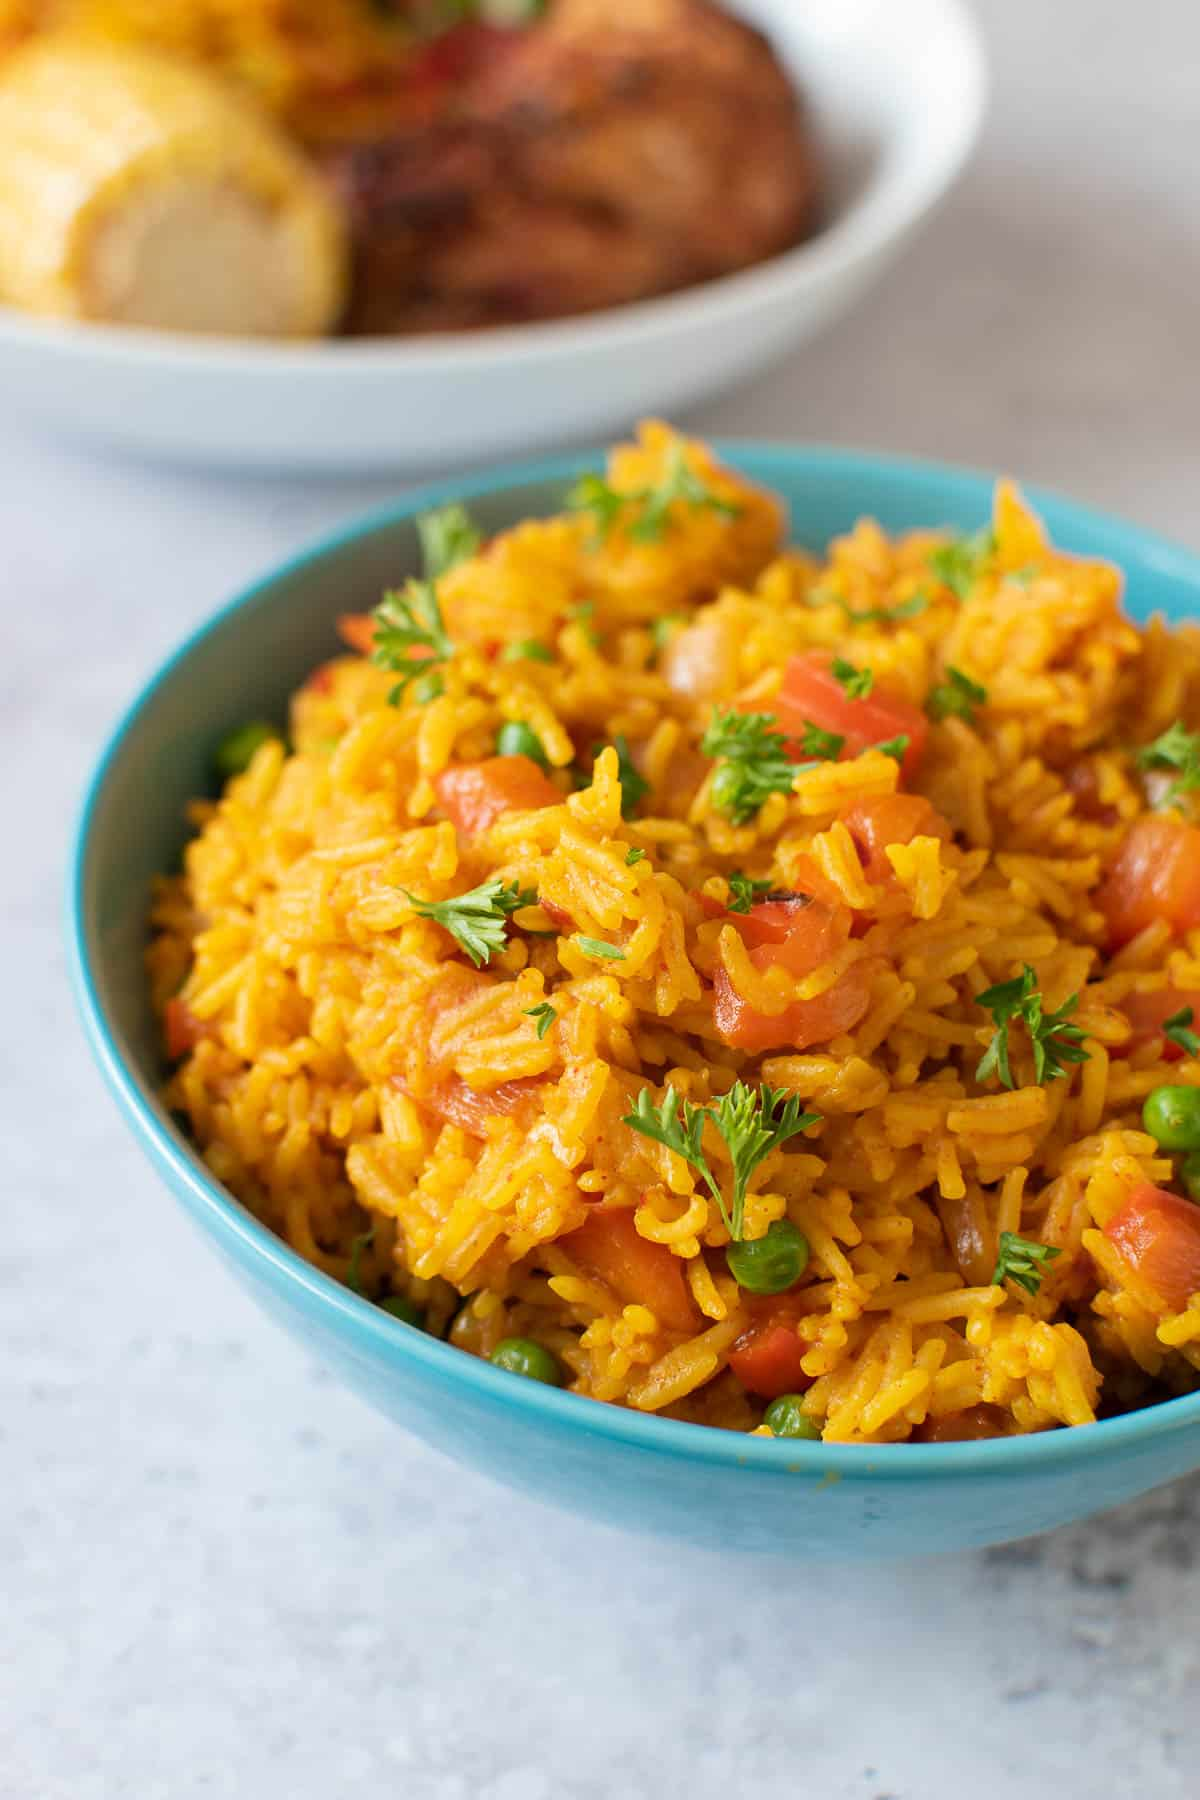 A bowl of nandos yellow rice with chicken.